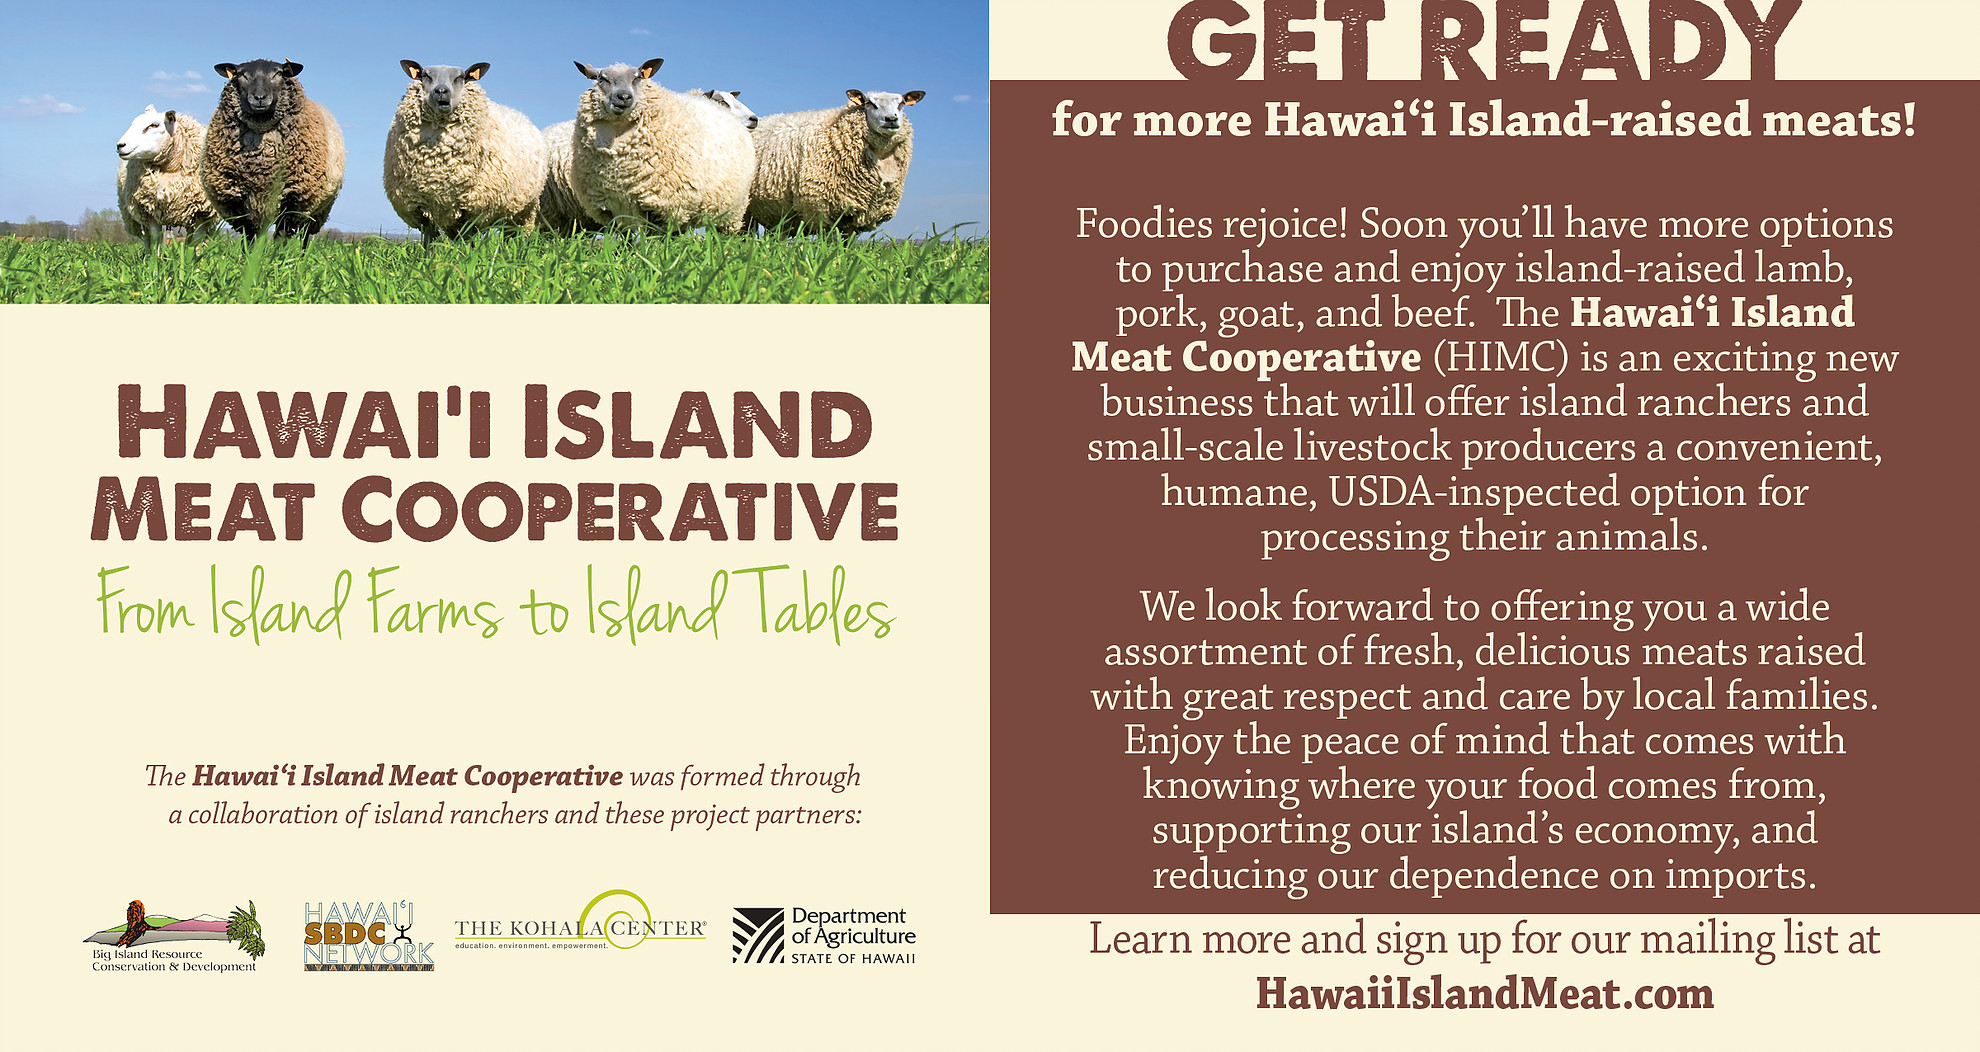 Hawai'i Island Meat Cooperative